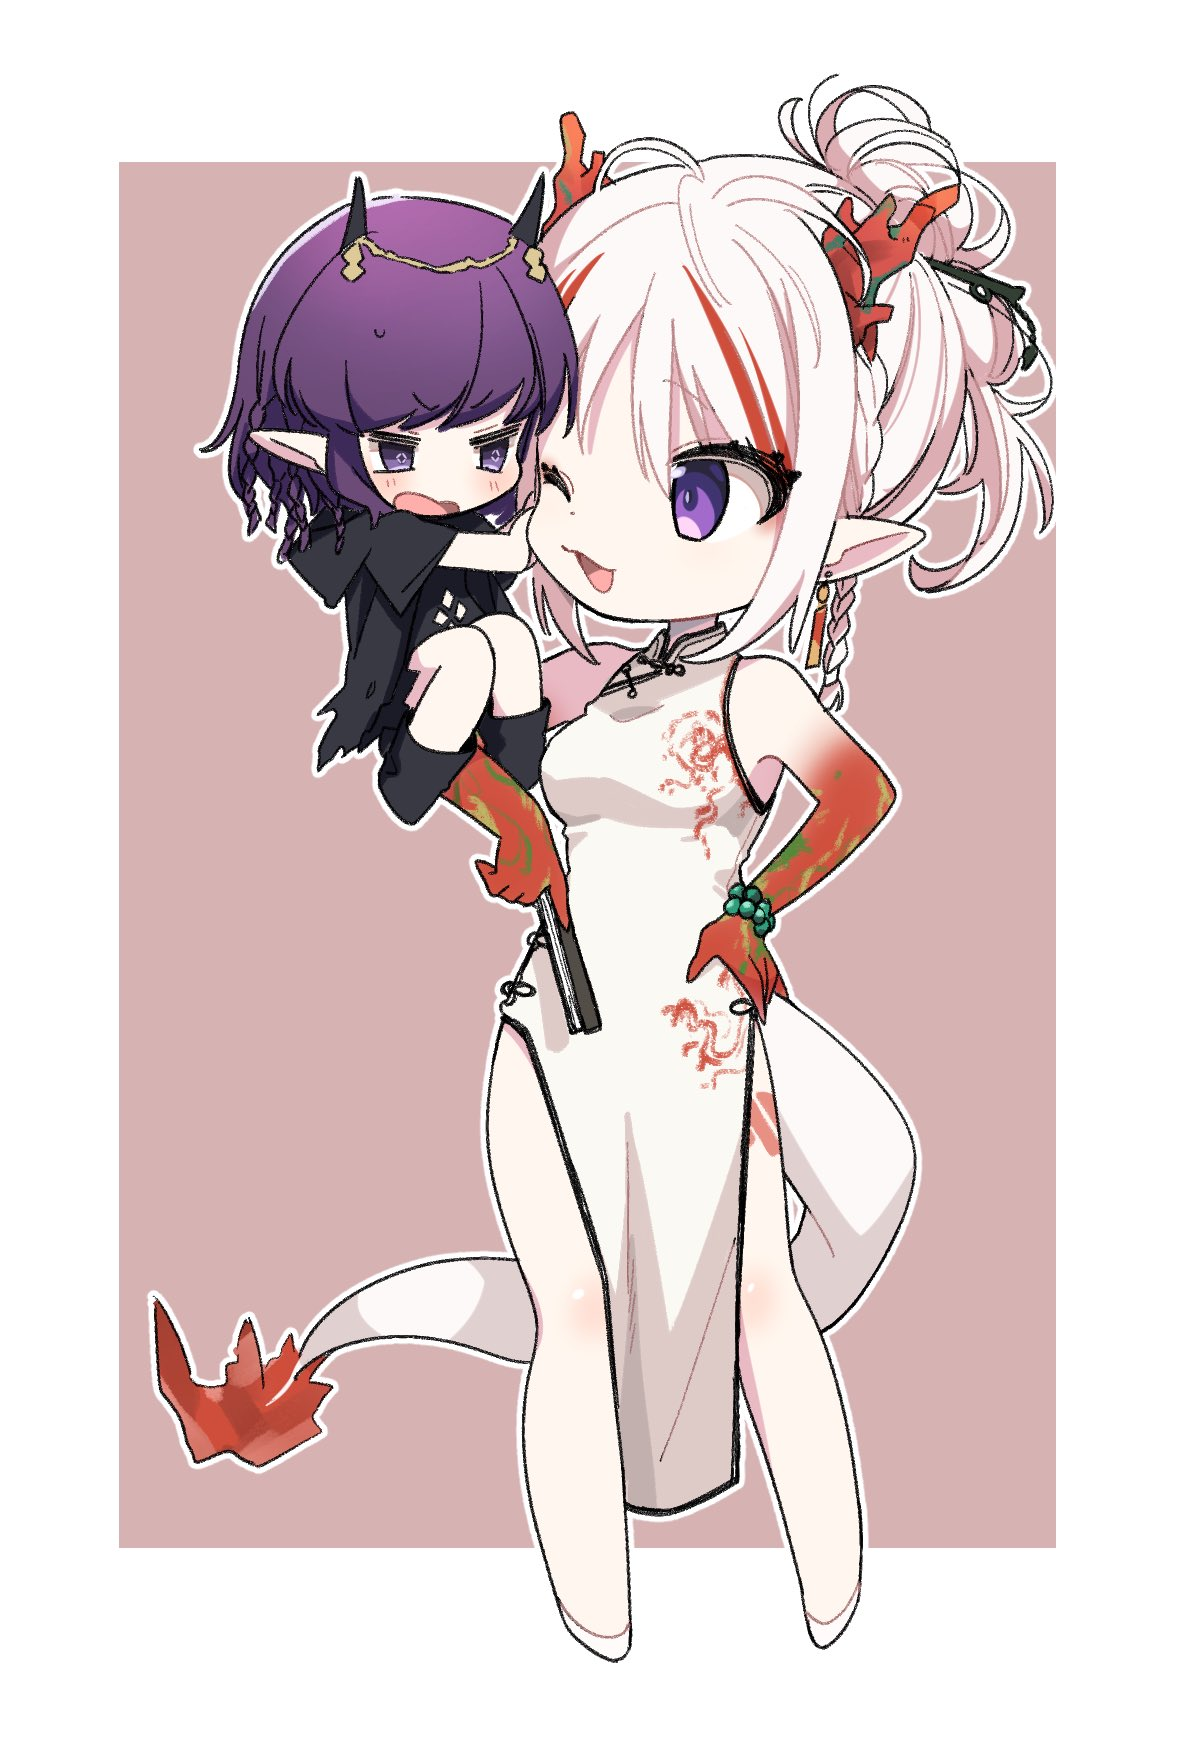 1919_decoy 2girls ahoge arknights arm_tattoo bare_shoulders black_footwear black_jacket border braid brown_background chibi china_dress chinese_clothes commentary demon_horns dragon_girl dragon_horns dragon_tail dress ear_piercing folded_ponytail highres hood hood_down horns jacket lava_(arknights) lava_the_purgatory_(arknights) multiple_girls nian_(arknights) nian_(unfettered_freedom)_(arknights) official_alternate_costume one_eye_closed open_mouth outside_border pelvic_curtain piercing pointy_ears purple_hair red_skirt sitting_on_shoulder skirt sleeveless sleeveless_dress tail tattoo thigh_tattoo violet_eyes white_border white_dress white_footwear white_hair